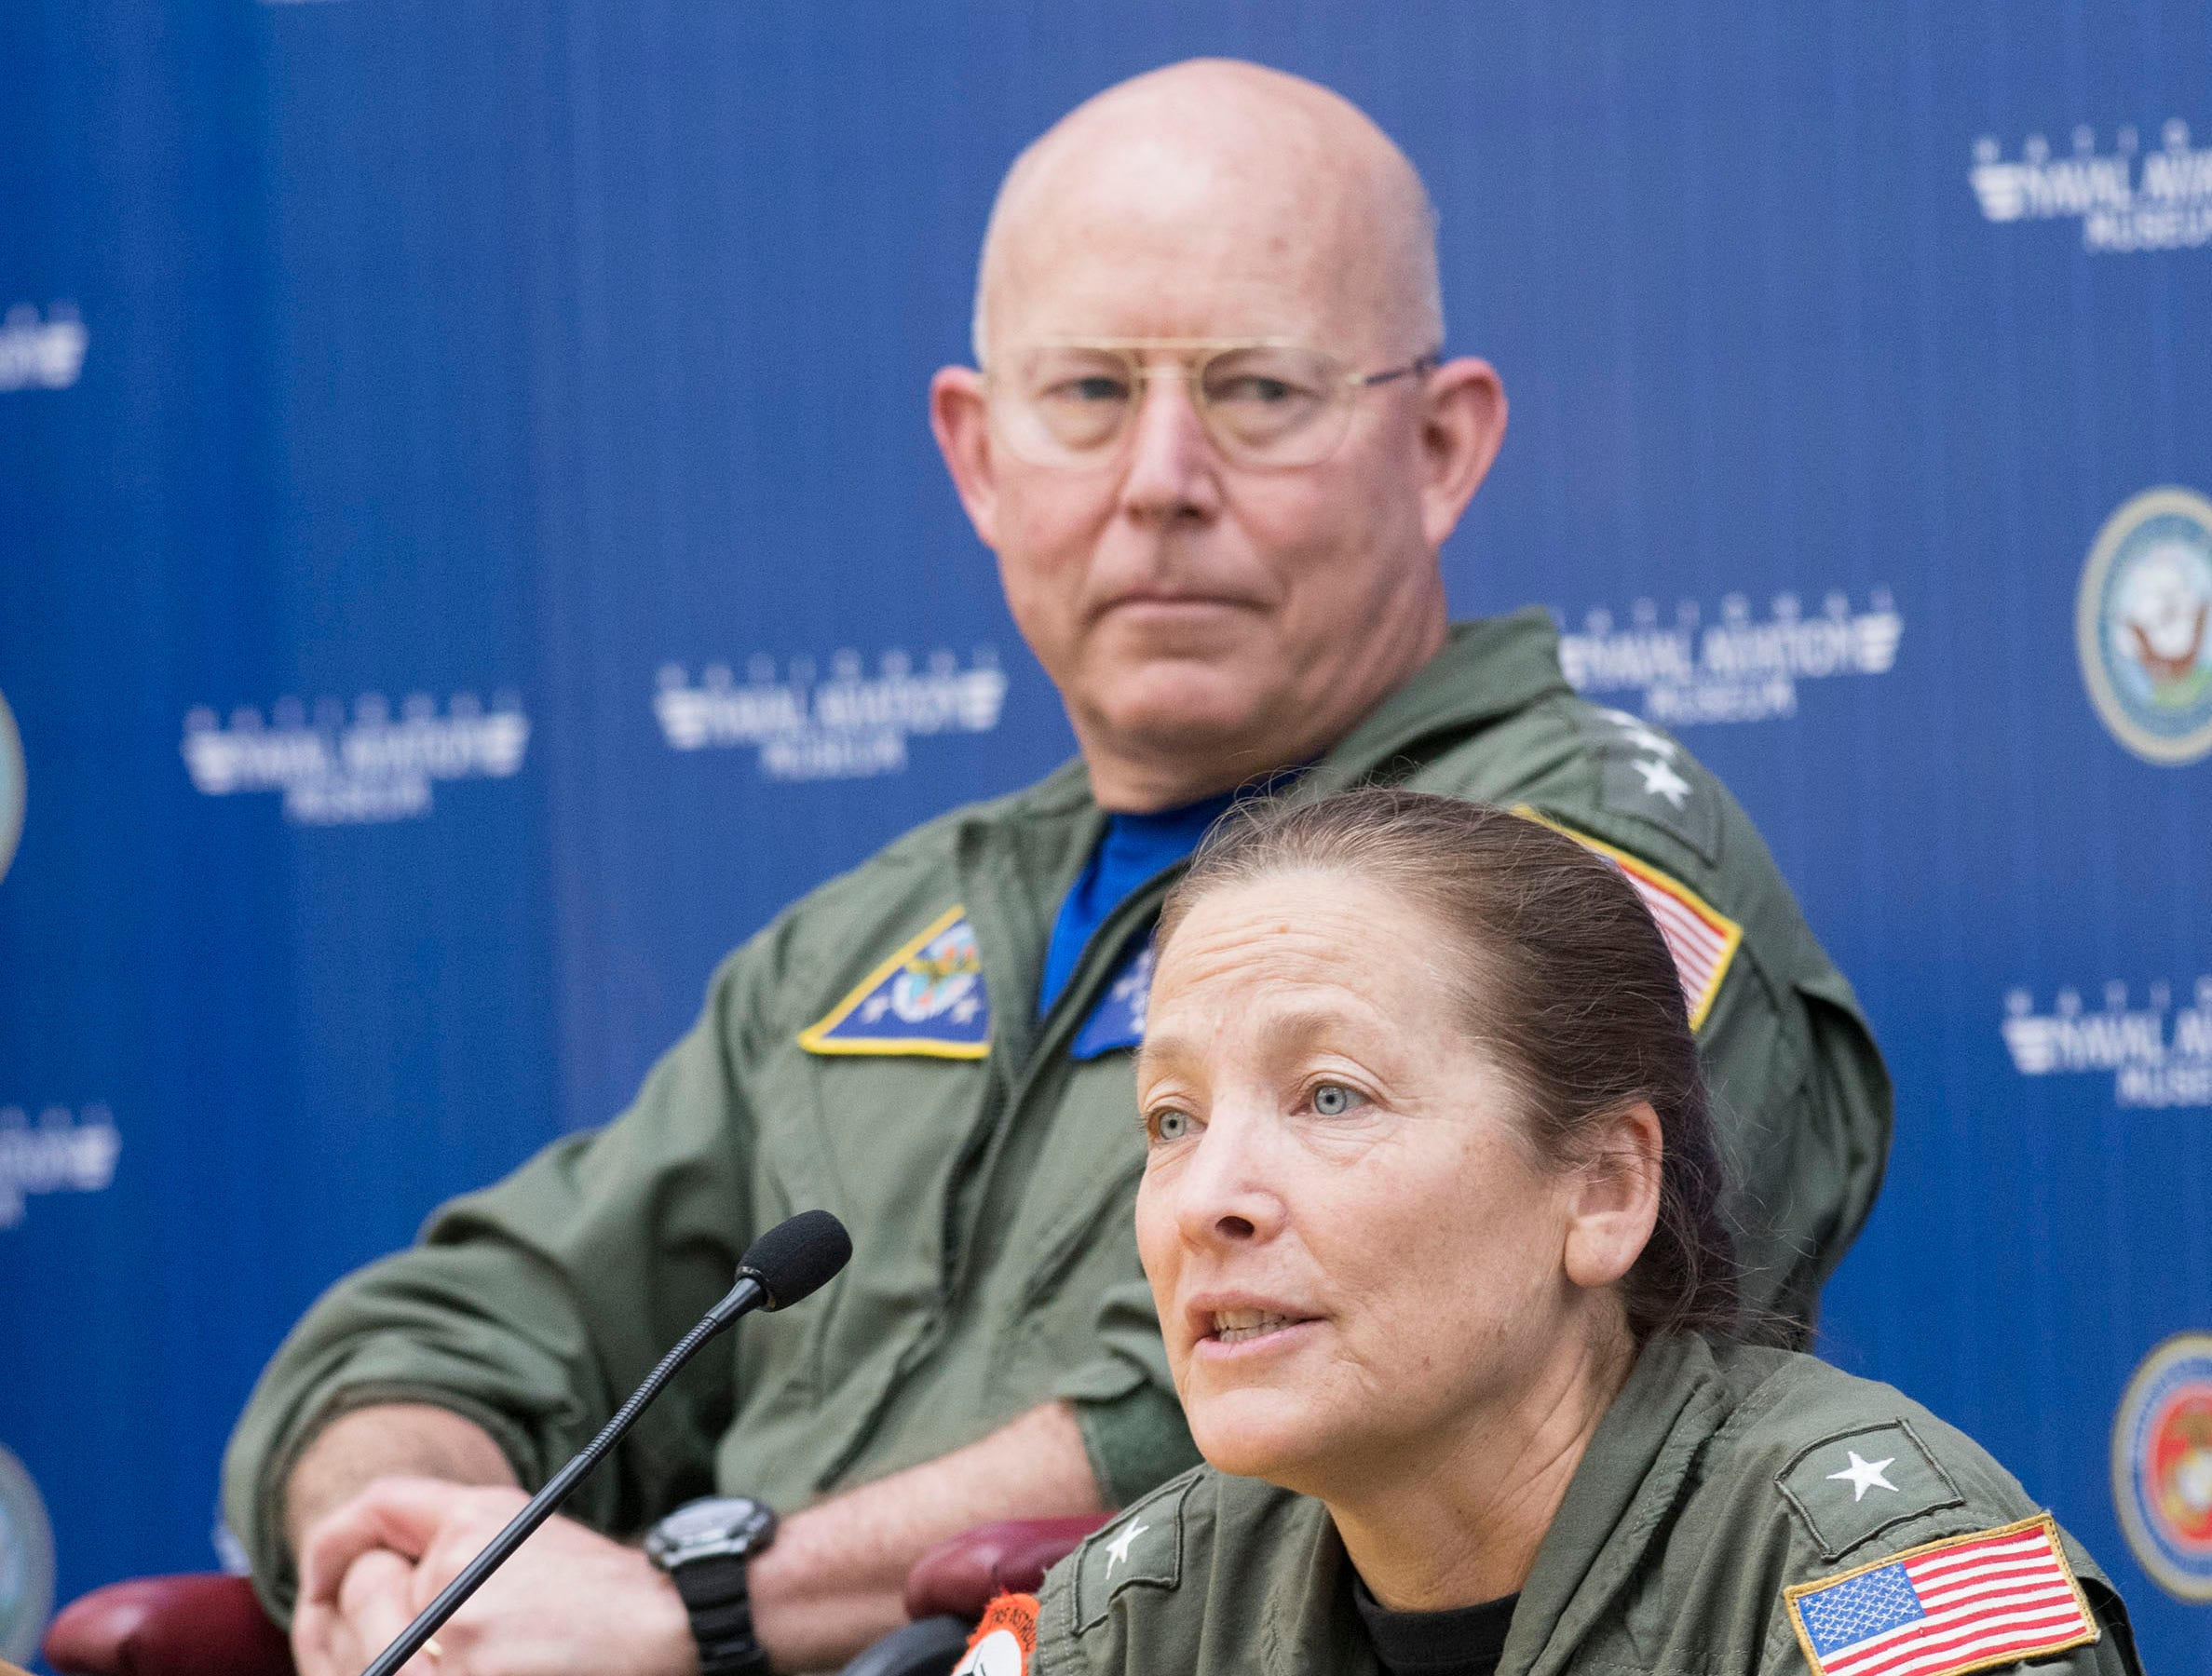 """Rear Adm. Shoshana Chatfield offers her insights to young aviators during a discussion panel entitled """"Naval Aviation Today and Tomorrow"""" during the 2019 Naval Aviation Symposium at the National Naval Aviation Museum on Friday, May 10, 2019, while Vice Adm. DeWolfe Miller looks on."""